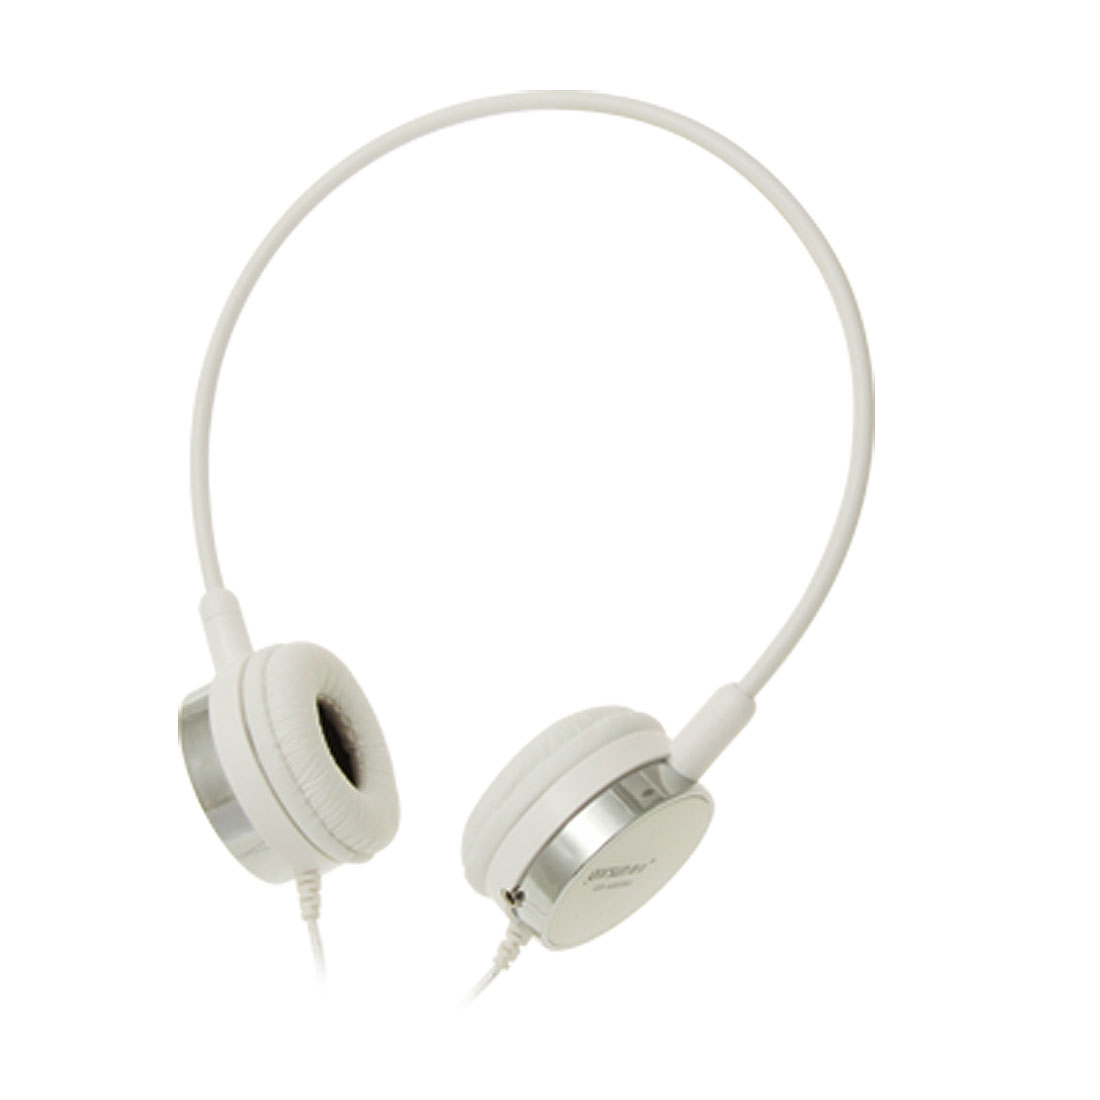 3.5mm Stereo Headset Earphone Headphone with Microphone Adjustable